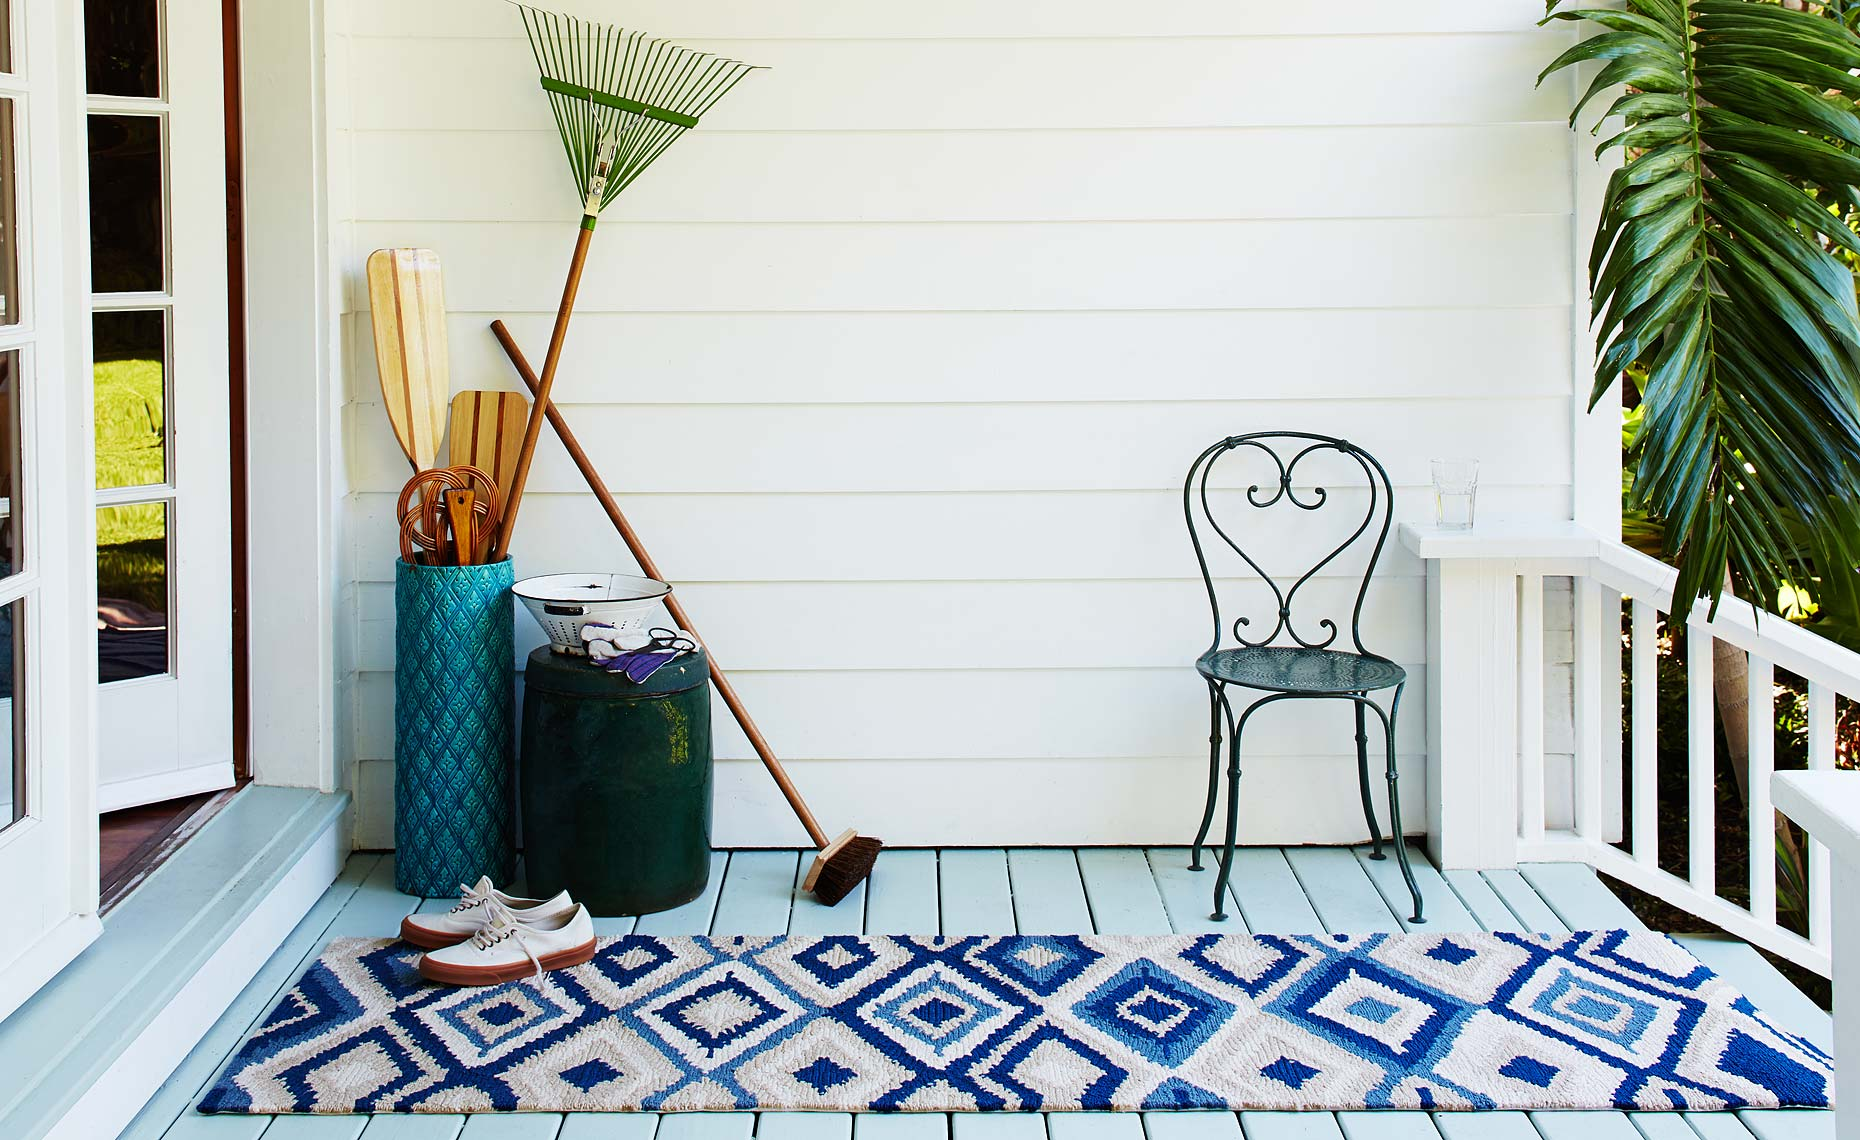 064_FULL-FRAME_00000_HEAD_RUG-PORCH-SHOT_1649